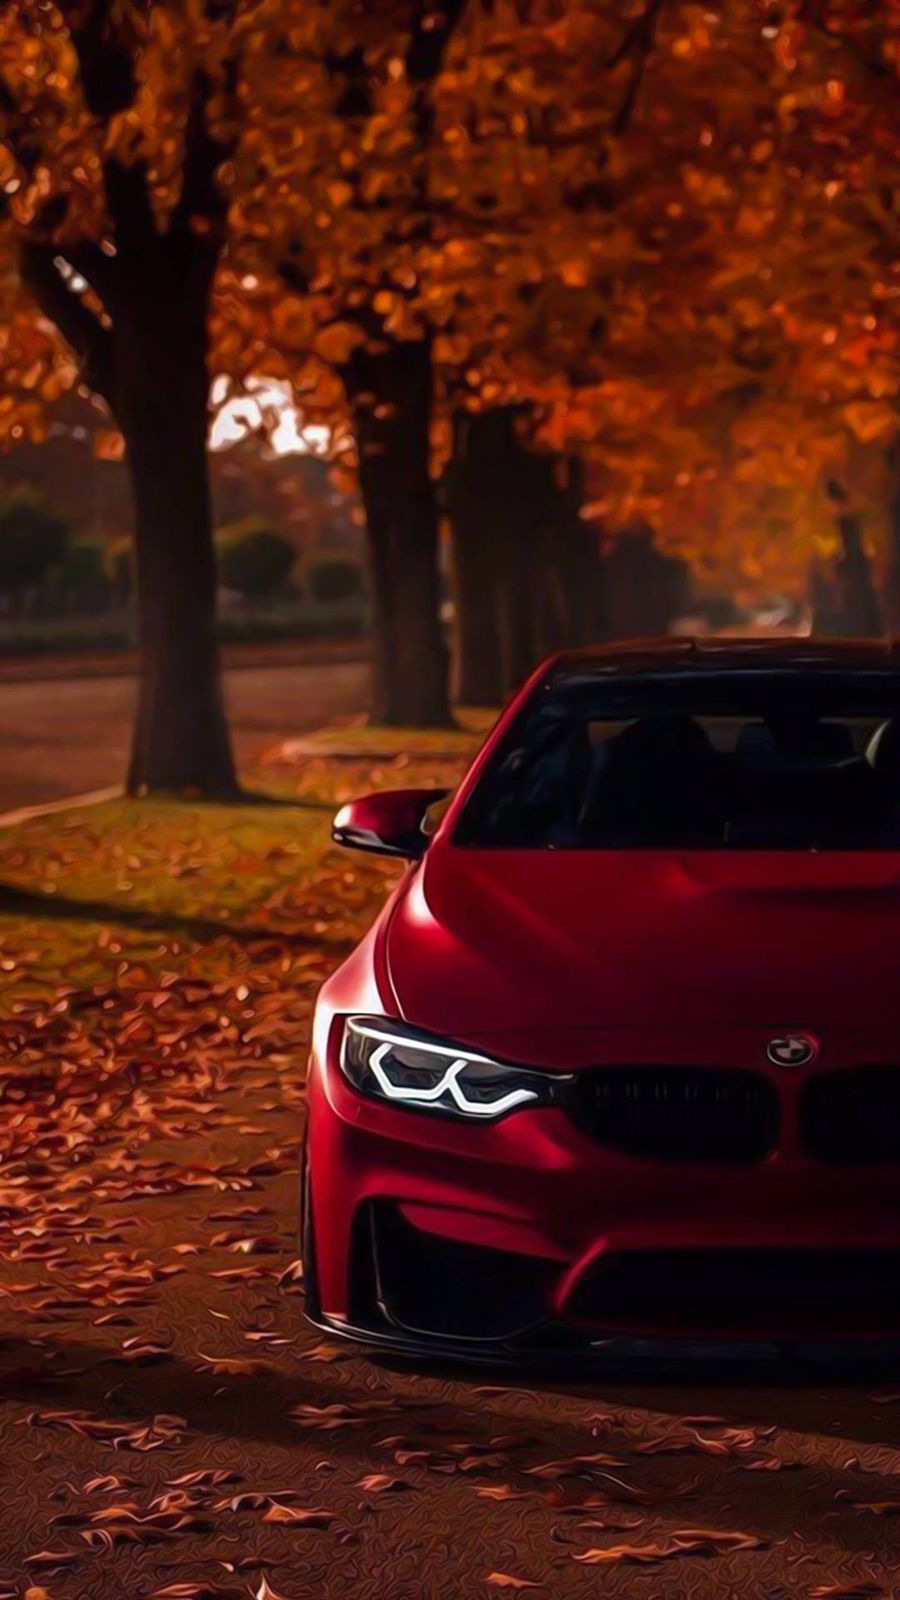 Bmw HD Wallpapers – New BMW Phone Background Wallpapers